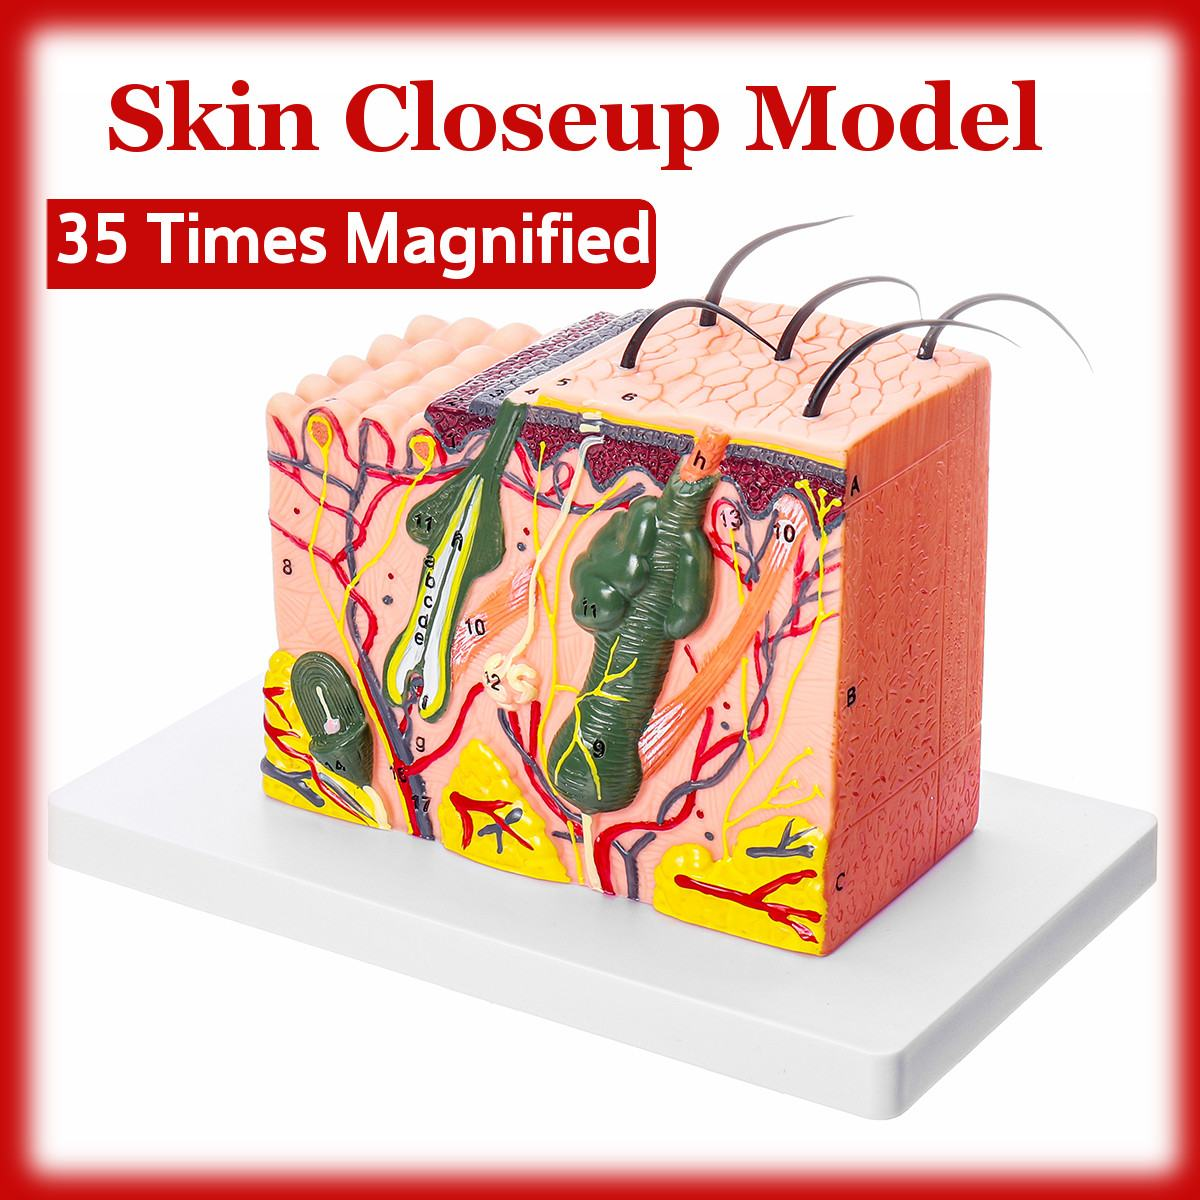 35 Times Magnified 3D Human skin model Block enlarged Plastic hair Layer structure Anatomical Anatomy Medical Teaching Tool